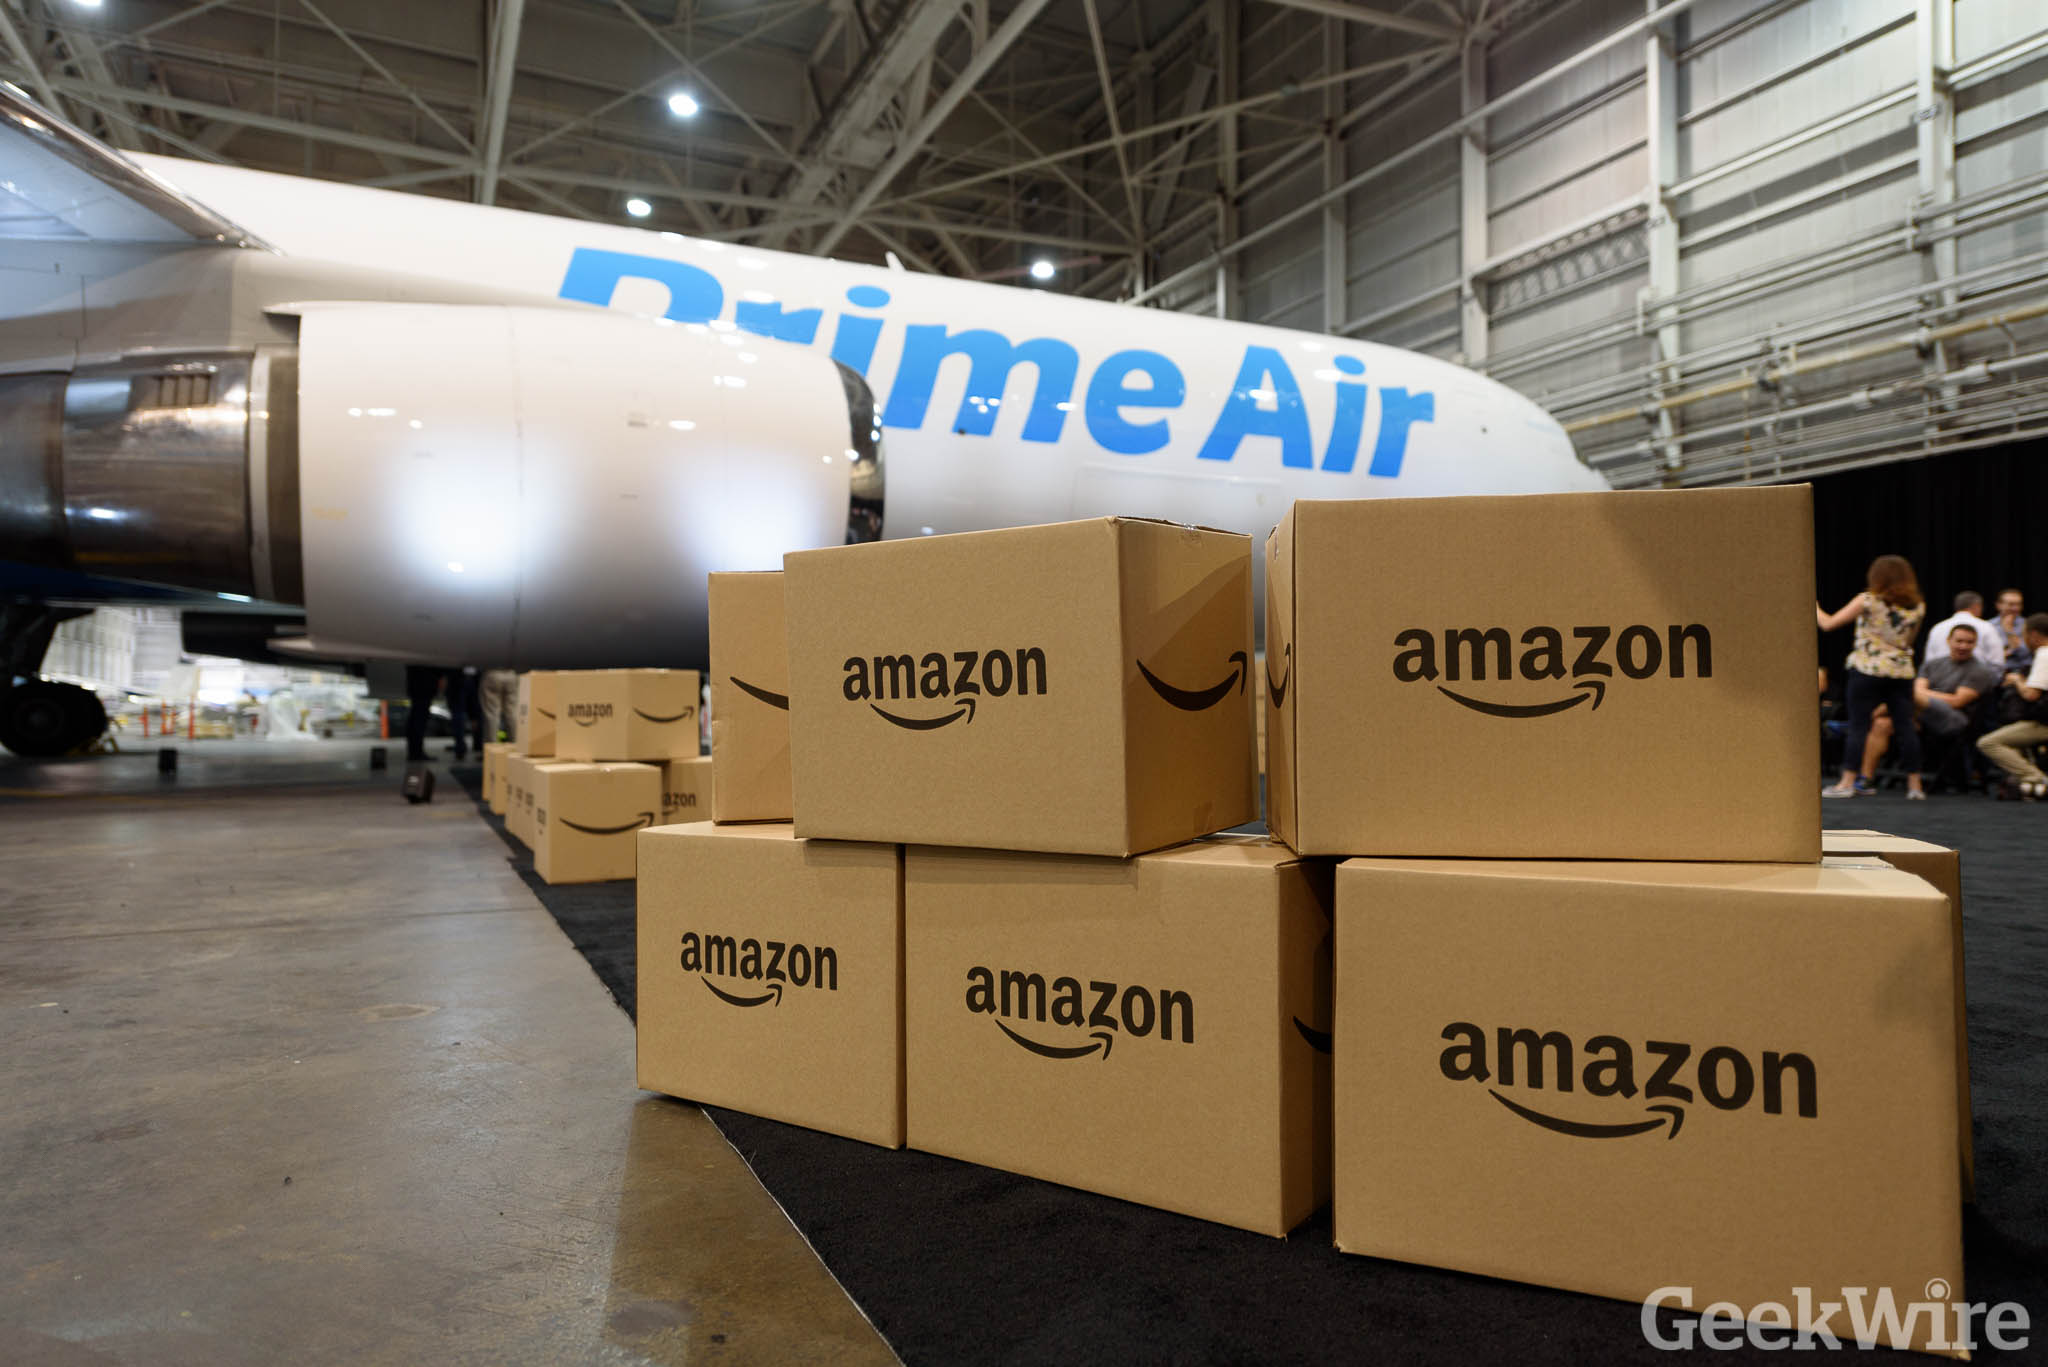 amazon drone shipping with Atlas Air Boeing 767 Freighters Amazon Prime on Forget Delivery Drones Meet Your New Delivery Robot besides News Around The Kingdom Father S Day Gifts And The Search For Intelligent Life also Best Stores Shops To Buy Drones Cheap together with 251910861814 furthermore Amazon Plans Flying Warehouses Hovering Above Cities Staffed By Armies Of Delivery Drones.